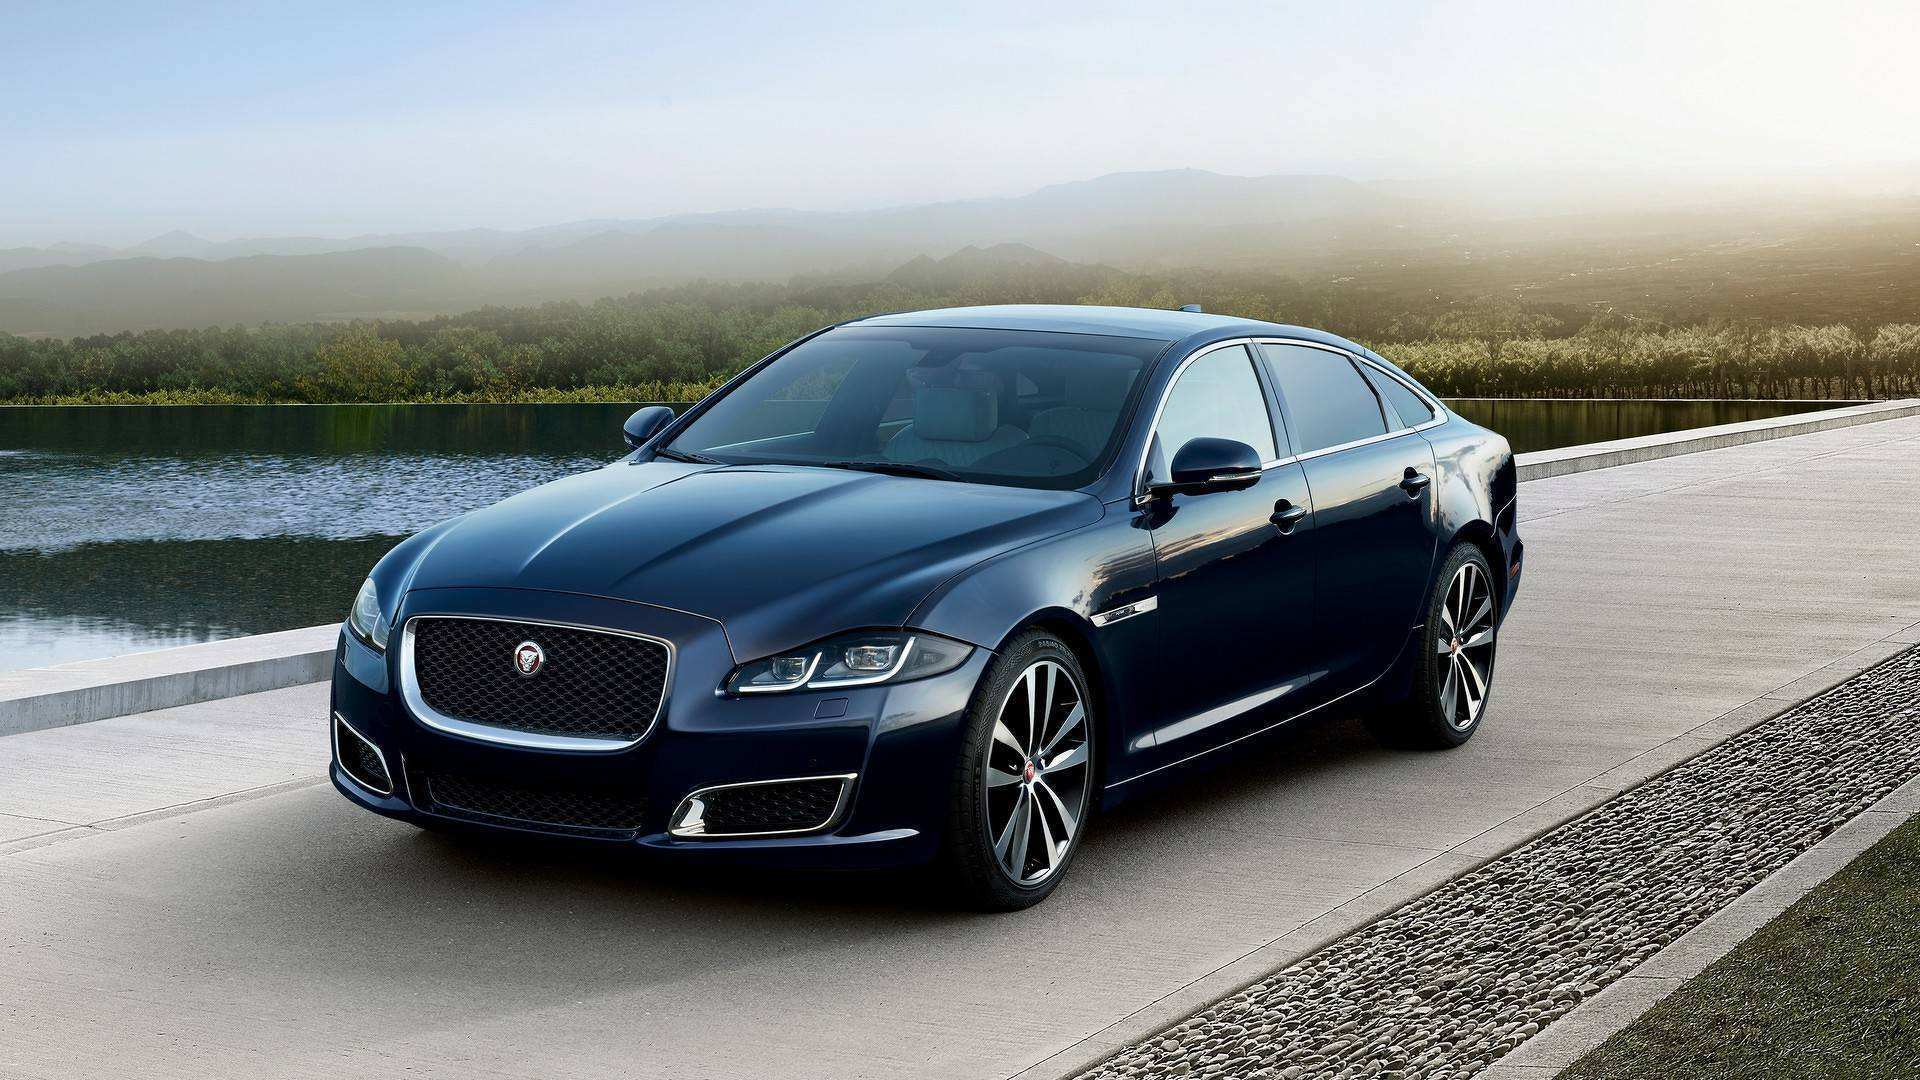 85 The Best 2020 Jaguar XJ Exterior